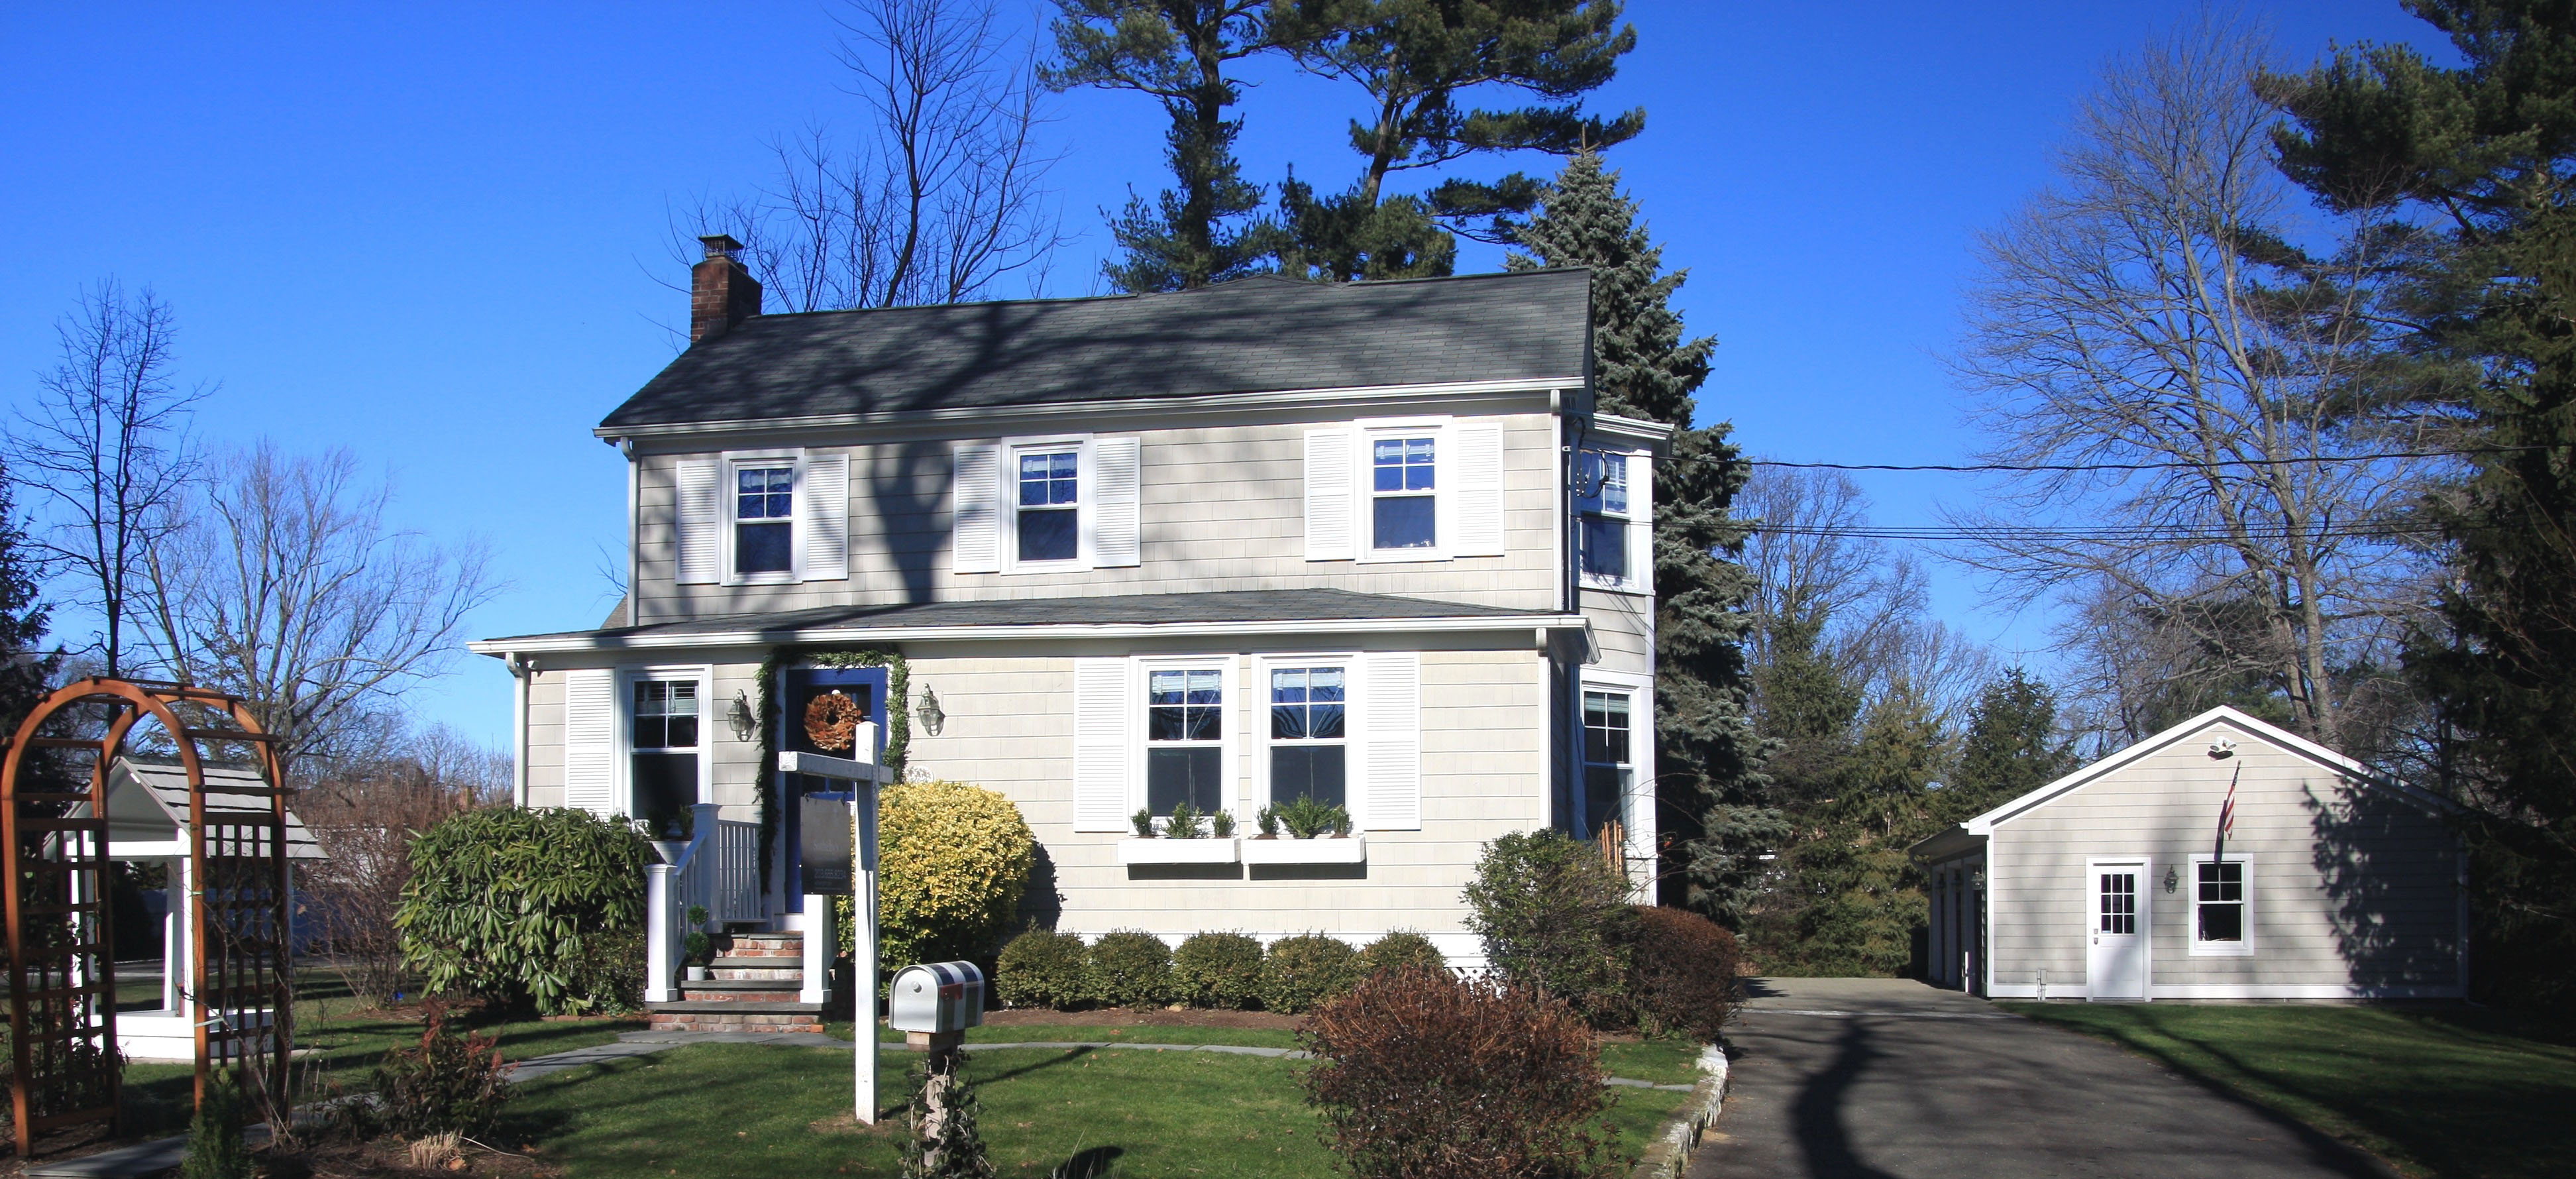 Single Family Home for Sale at Classic, Charming and Convenient 67 Relihan Road Darien, Connecticut, 06820 United States